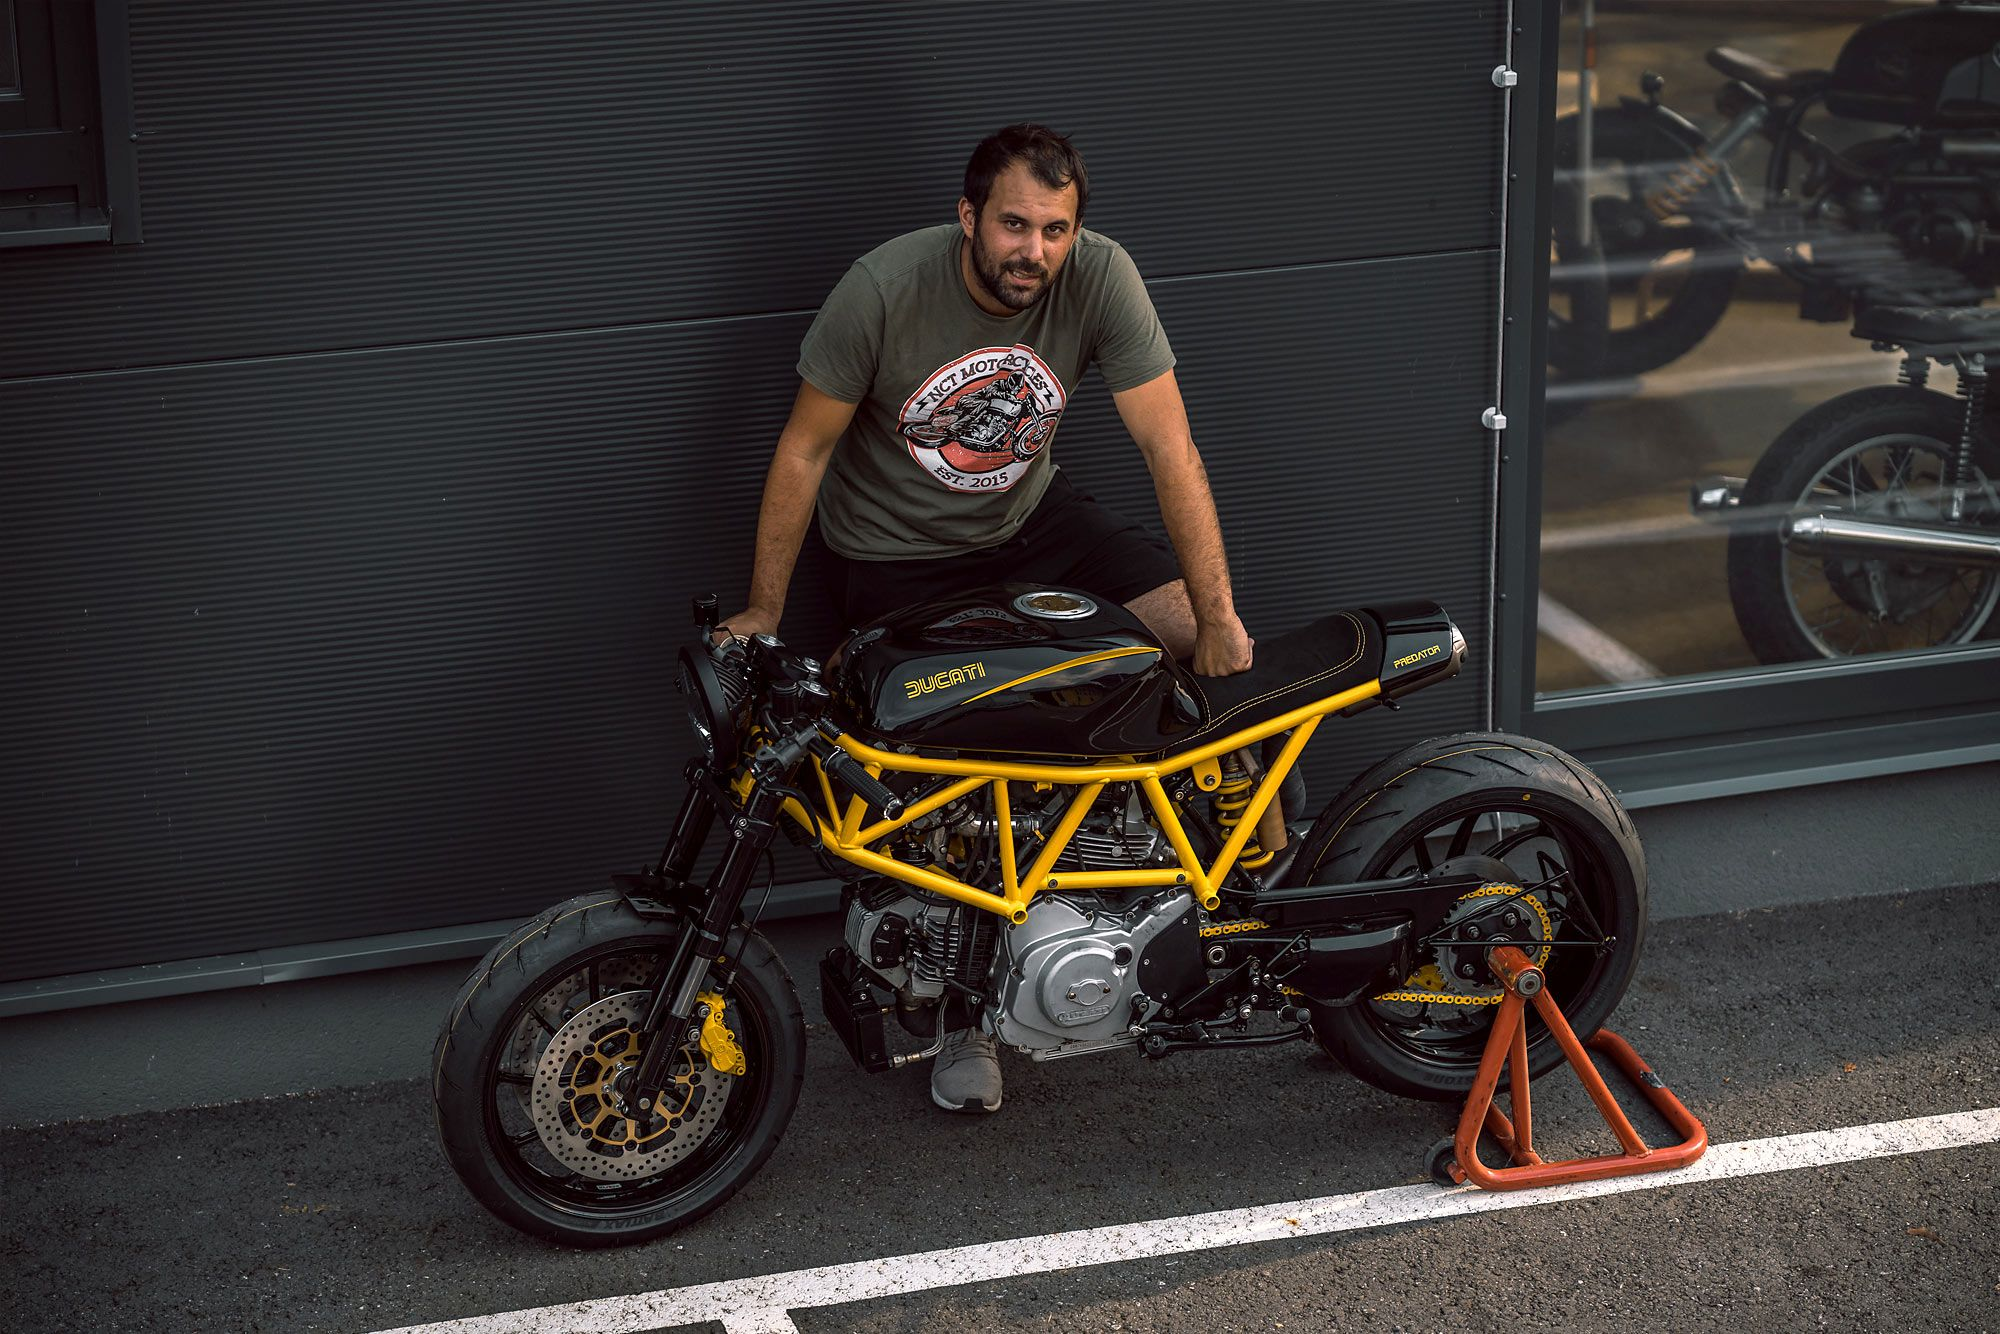 Sting Like A V Nct Motorcycle S Angry Predator Ducati 750ss